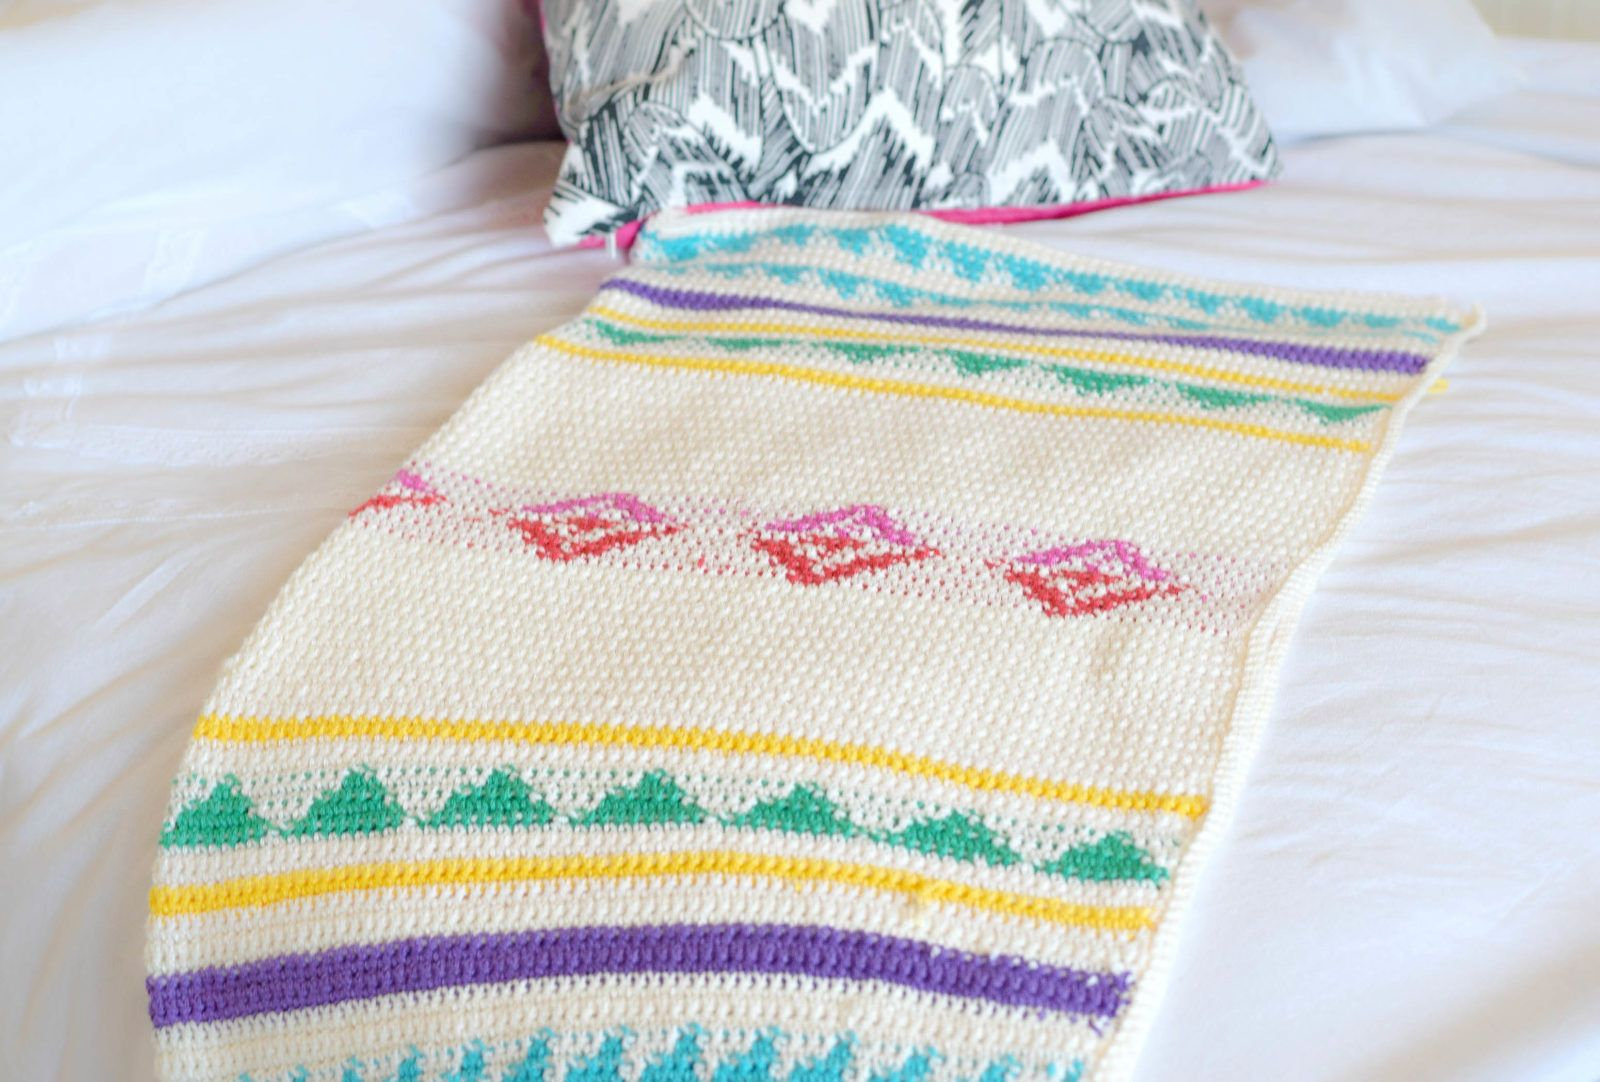 How To Work Tapestry Crochet (The Easy Way